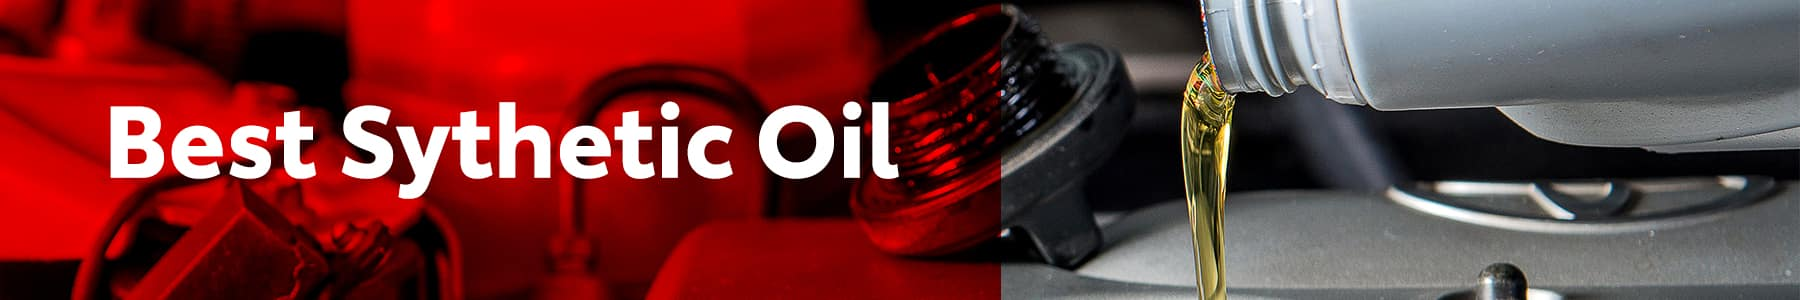 Who makes the best synthetic oil for cars and trucks at Boch New & Used Cars in Massachusetts | best synthetic oil banner